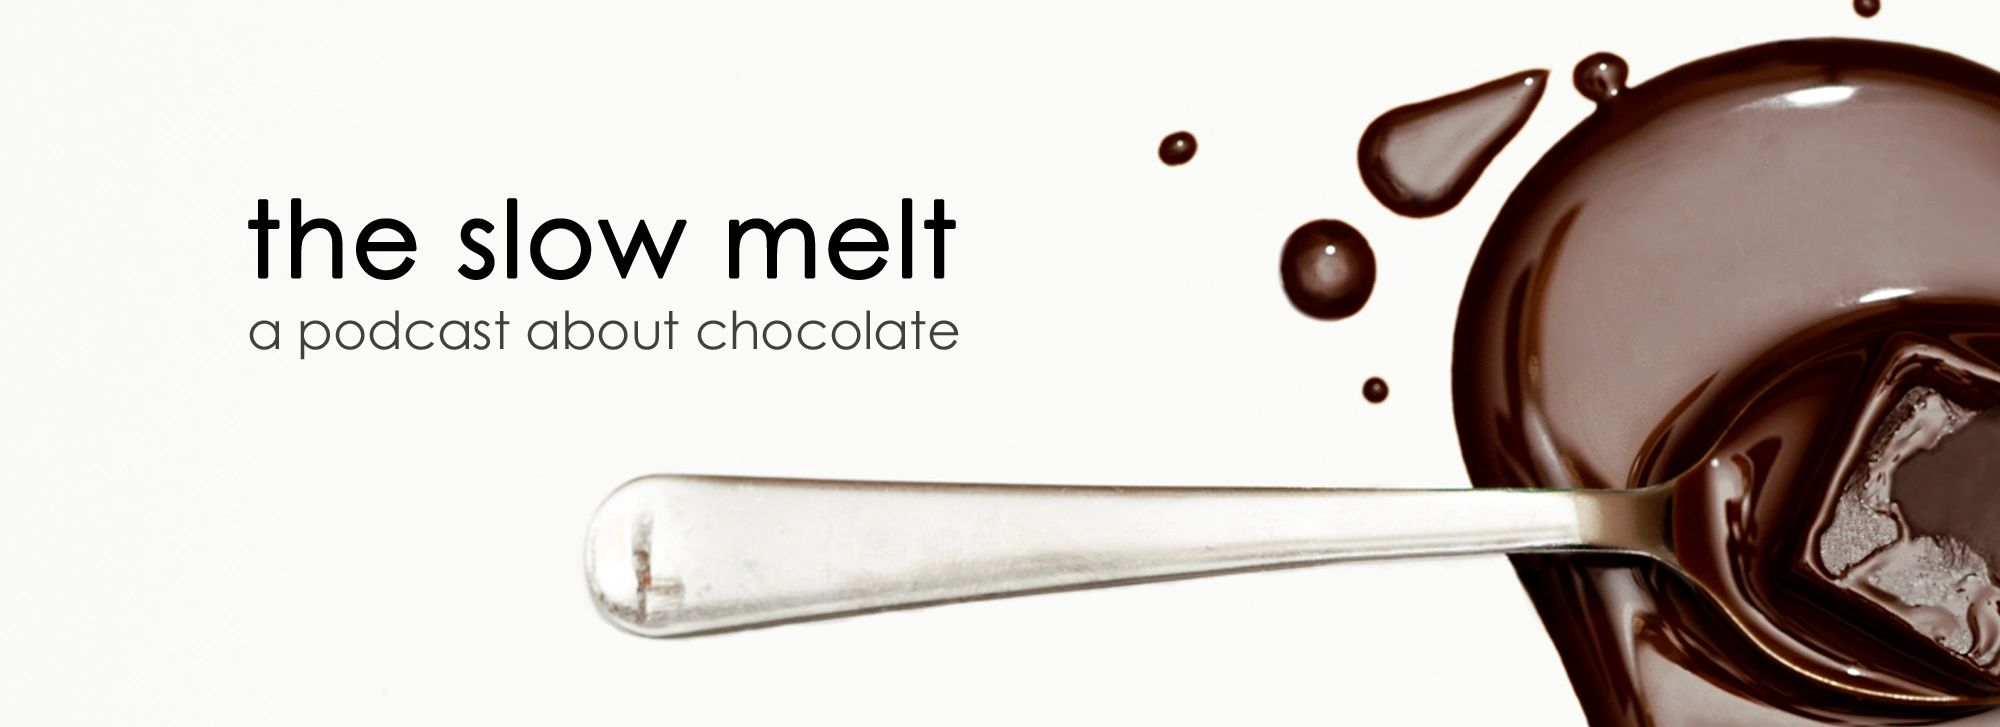 The Slow Melt chocolate podcast